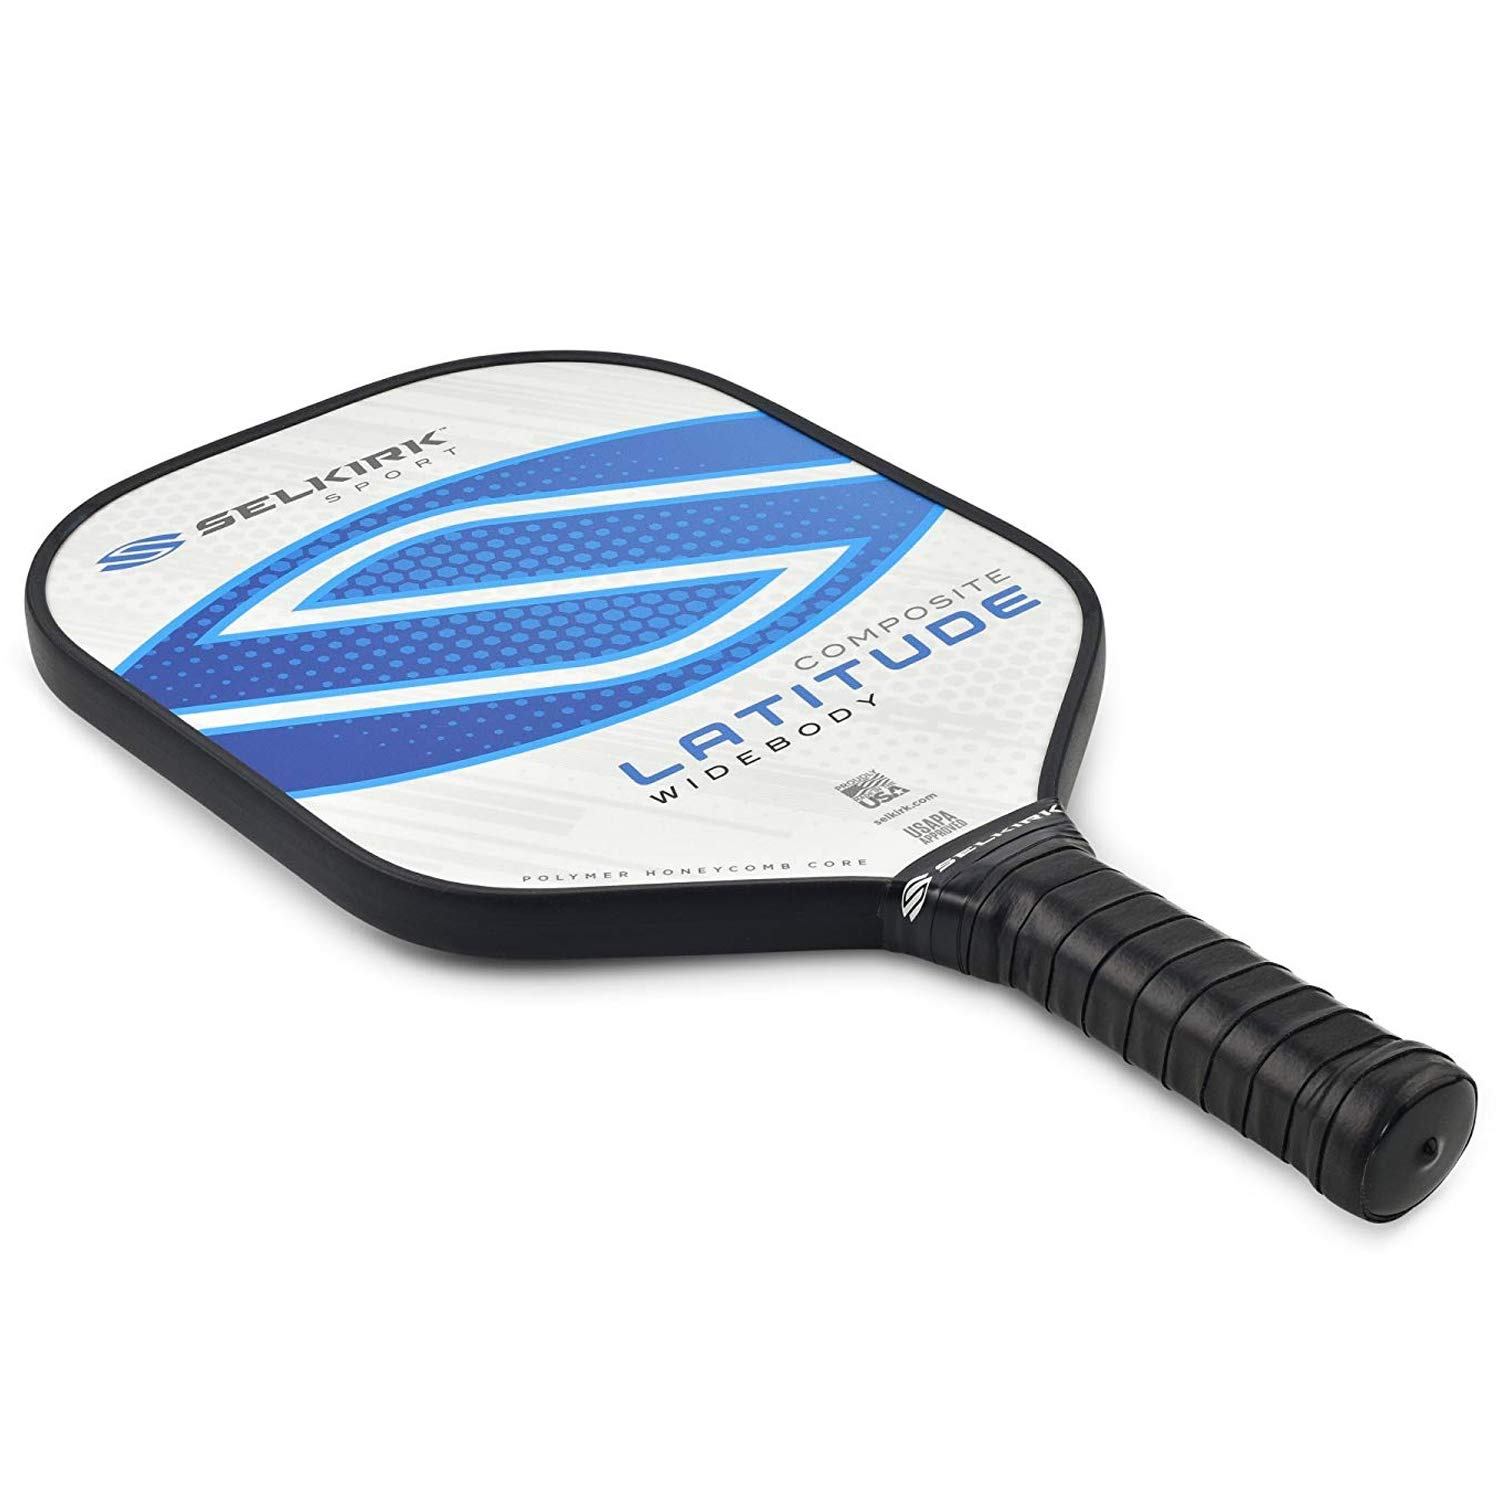 Selkirk Latitude Widebody Composite Pickleball Paddle - USAPA Approved - PowerCore Polymer Core - PolyFlex Composite Surface - EdgeSentry Protection - ...